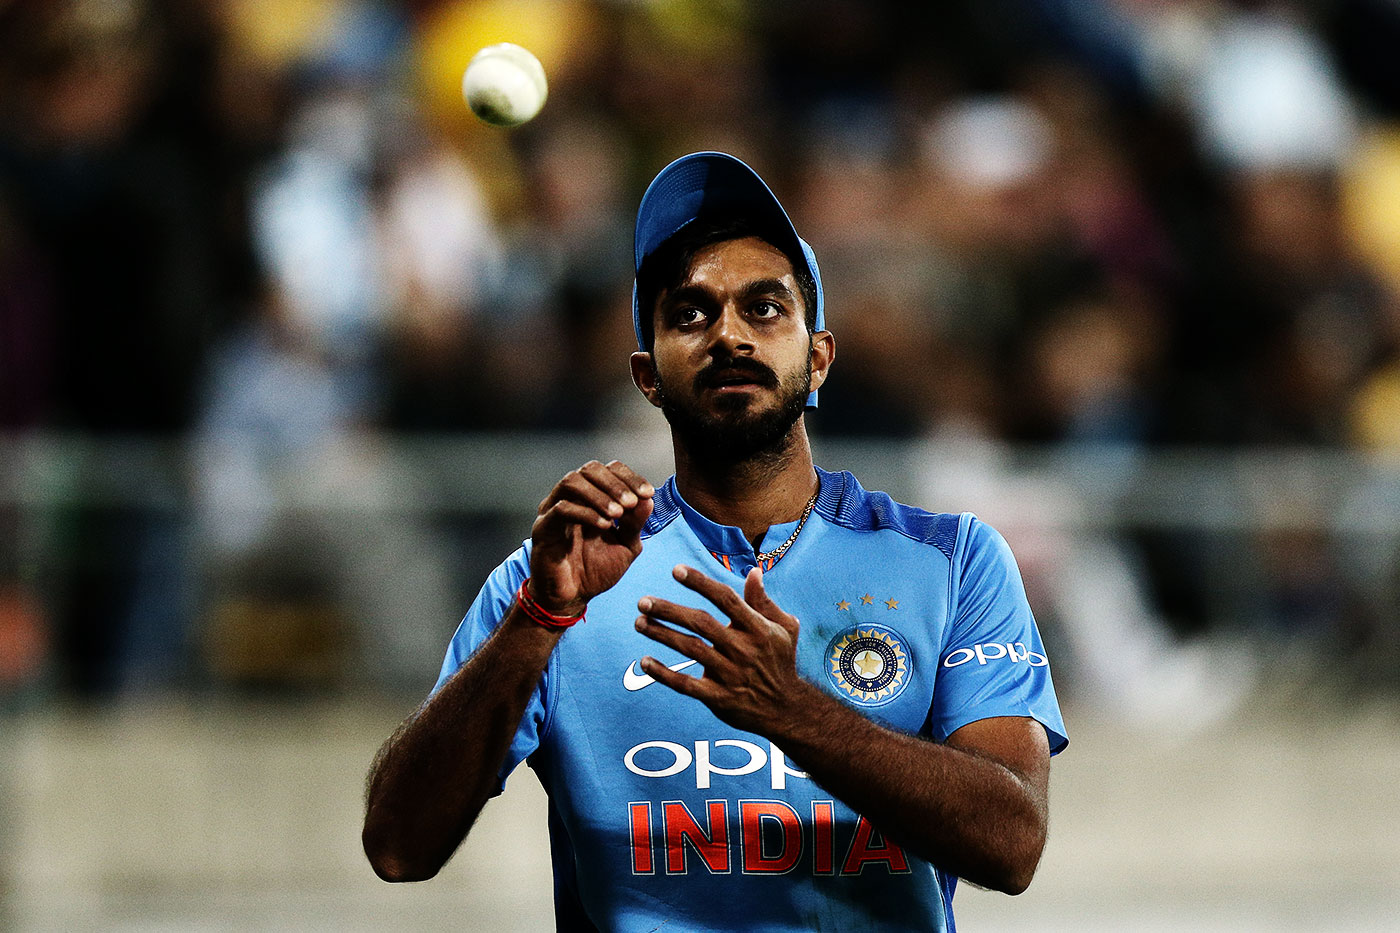 ICC World Cup 2019: Vijay Shankar Not Surprised With His Bowling Efforts Against Pakistan